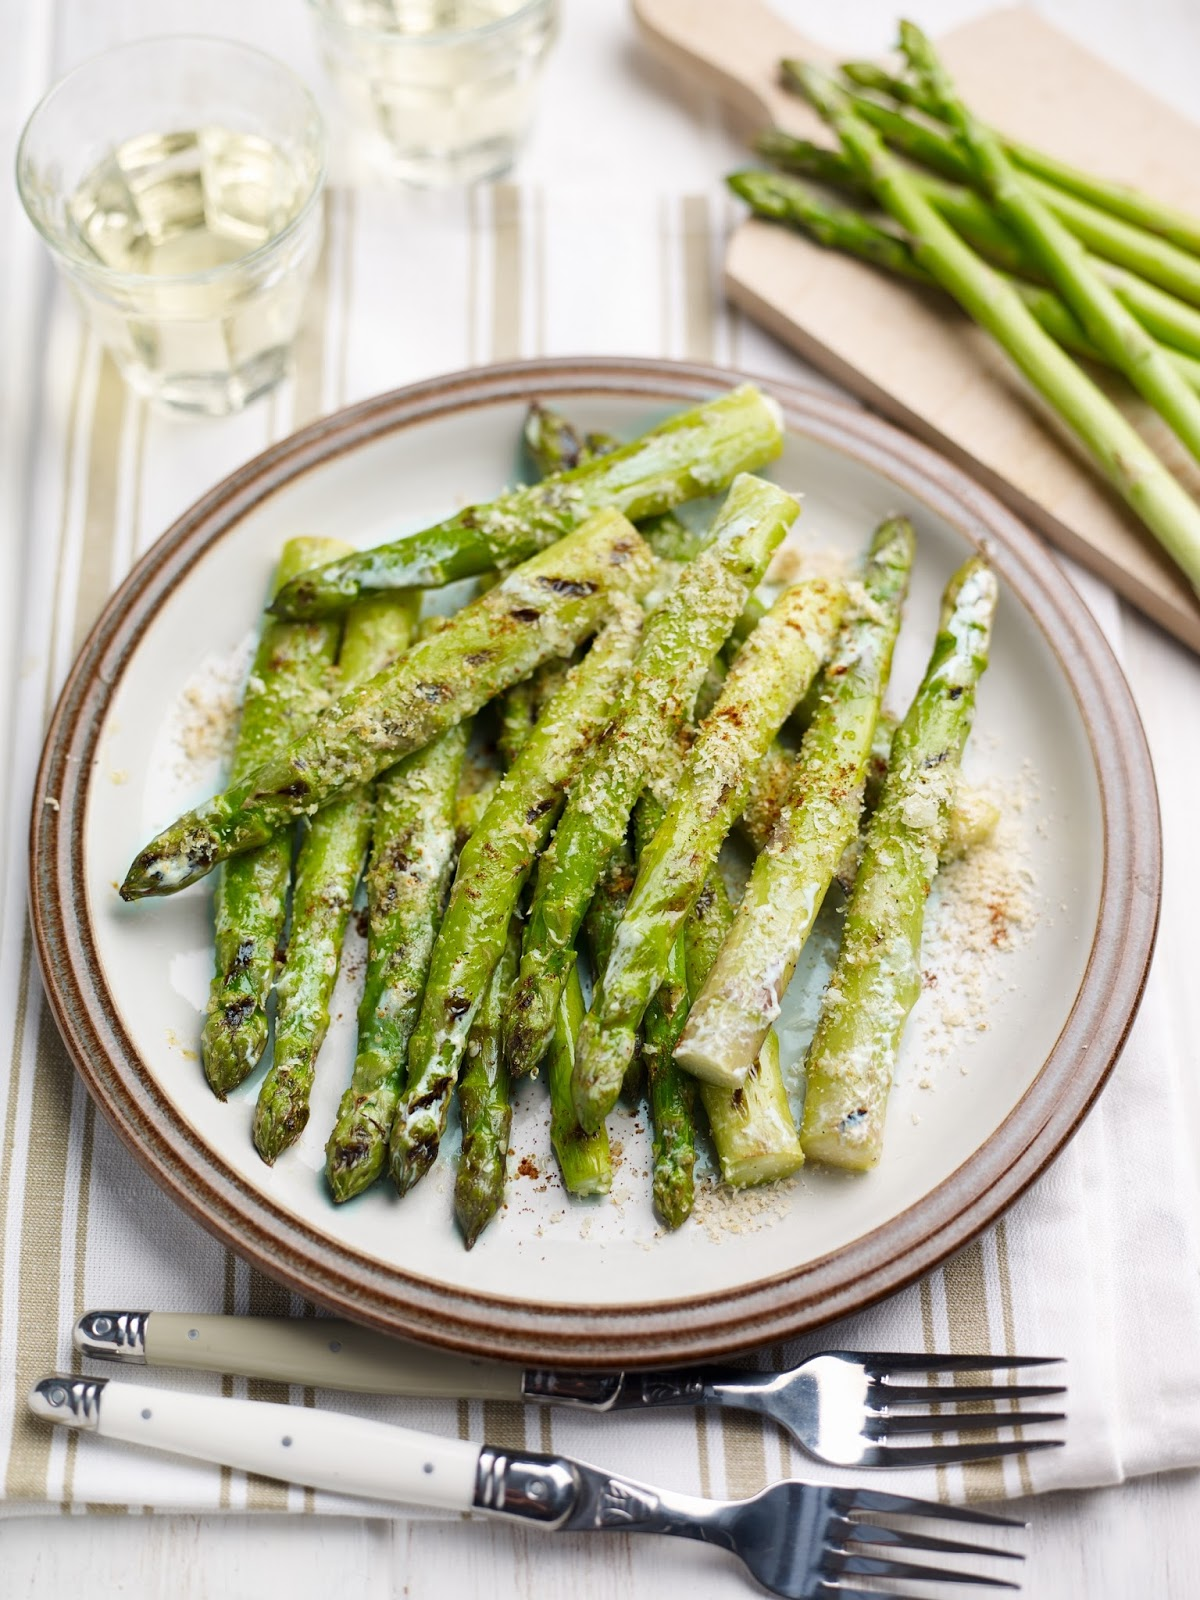 How To Make Mexican-style British Asparagus with Lime And Sour Cream Glaze